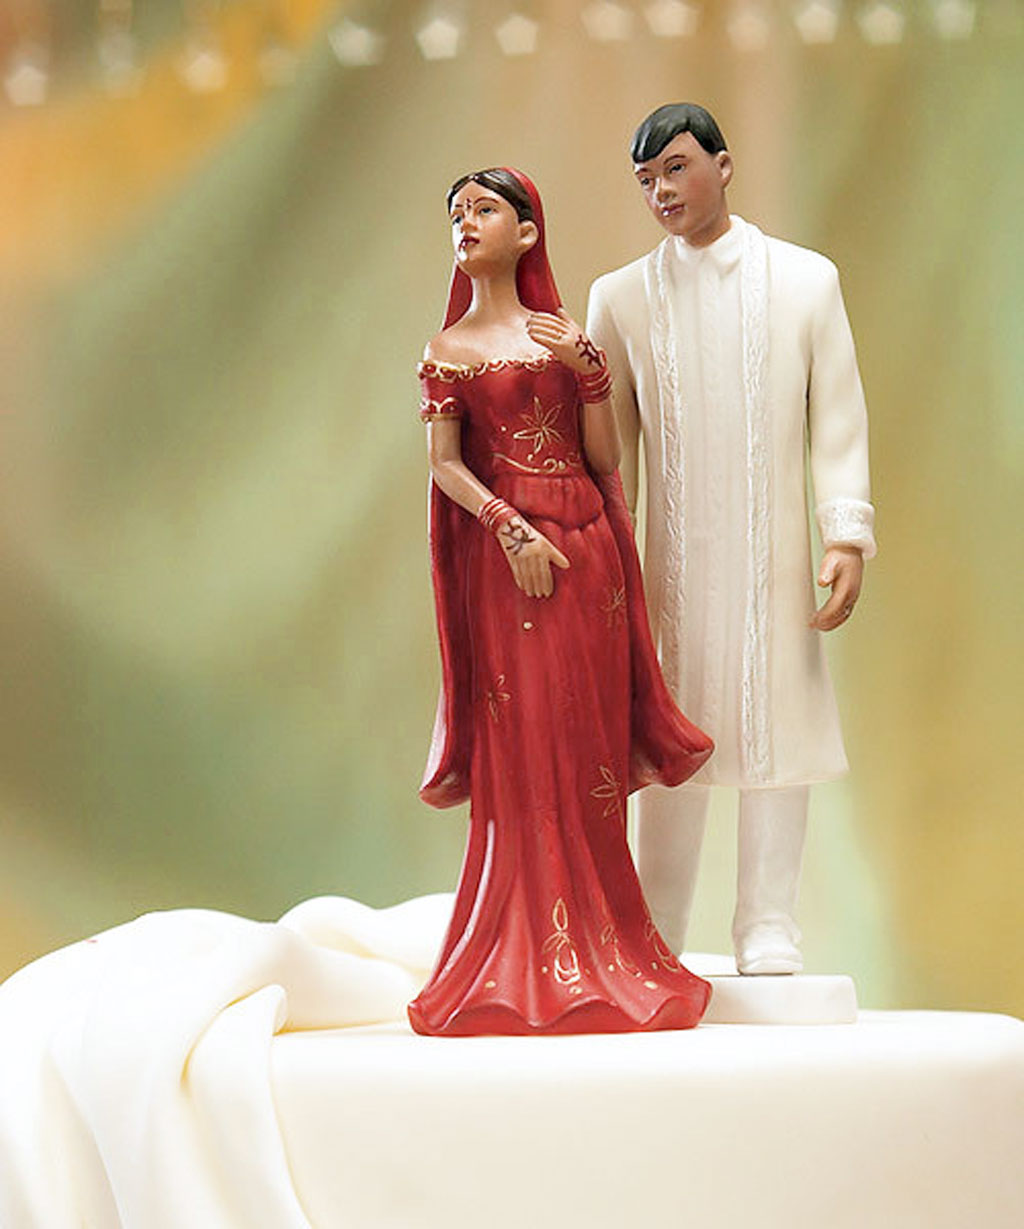 traditional-indian-wedding-star-cake-topper-cake-picture-ideas Top 10 Most Unique and Funny Wedding Cake Toppers 2017